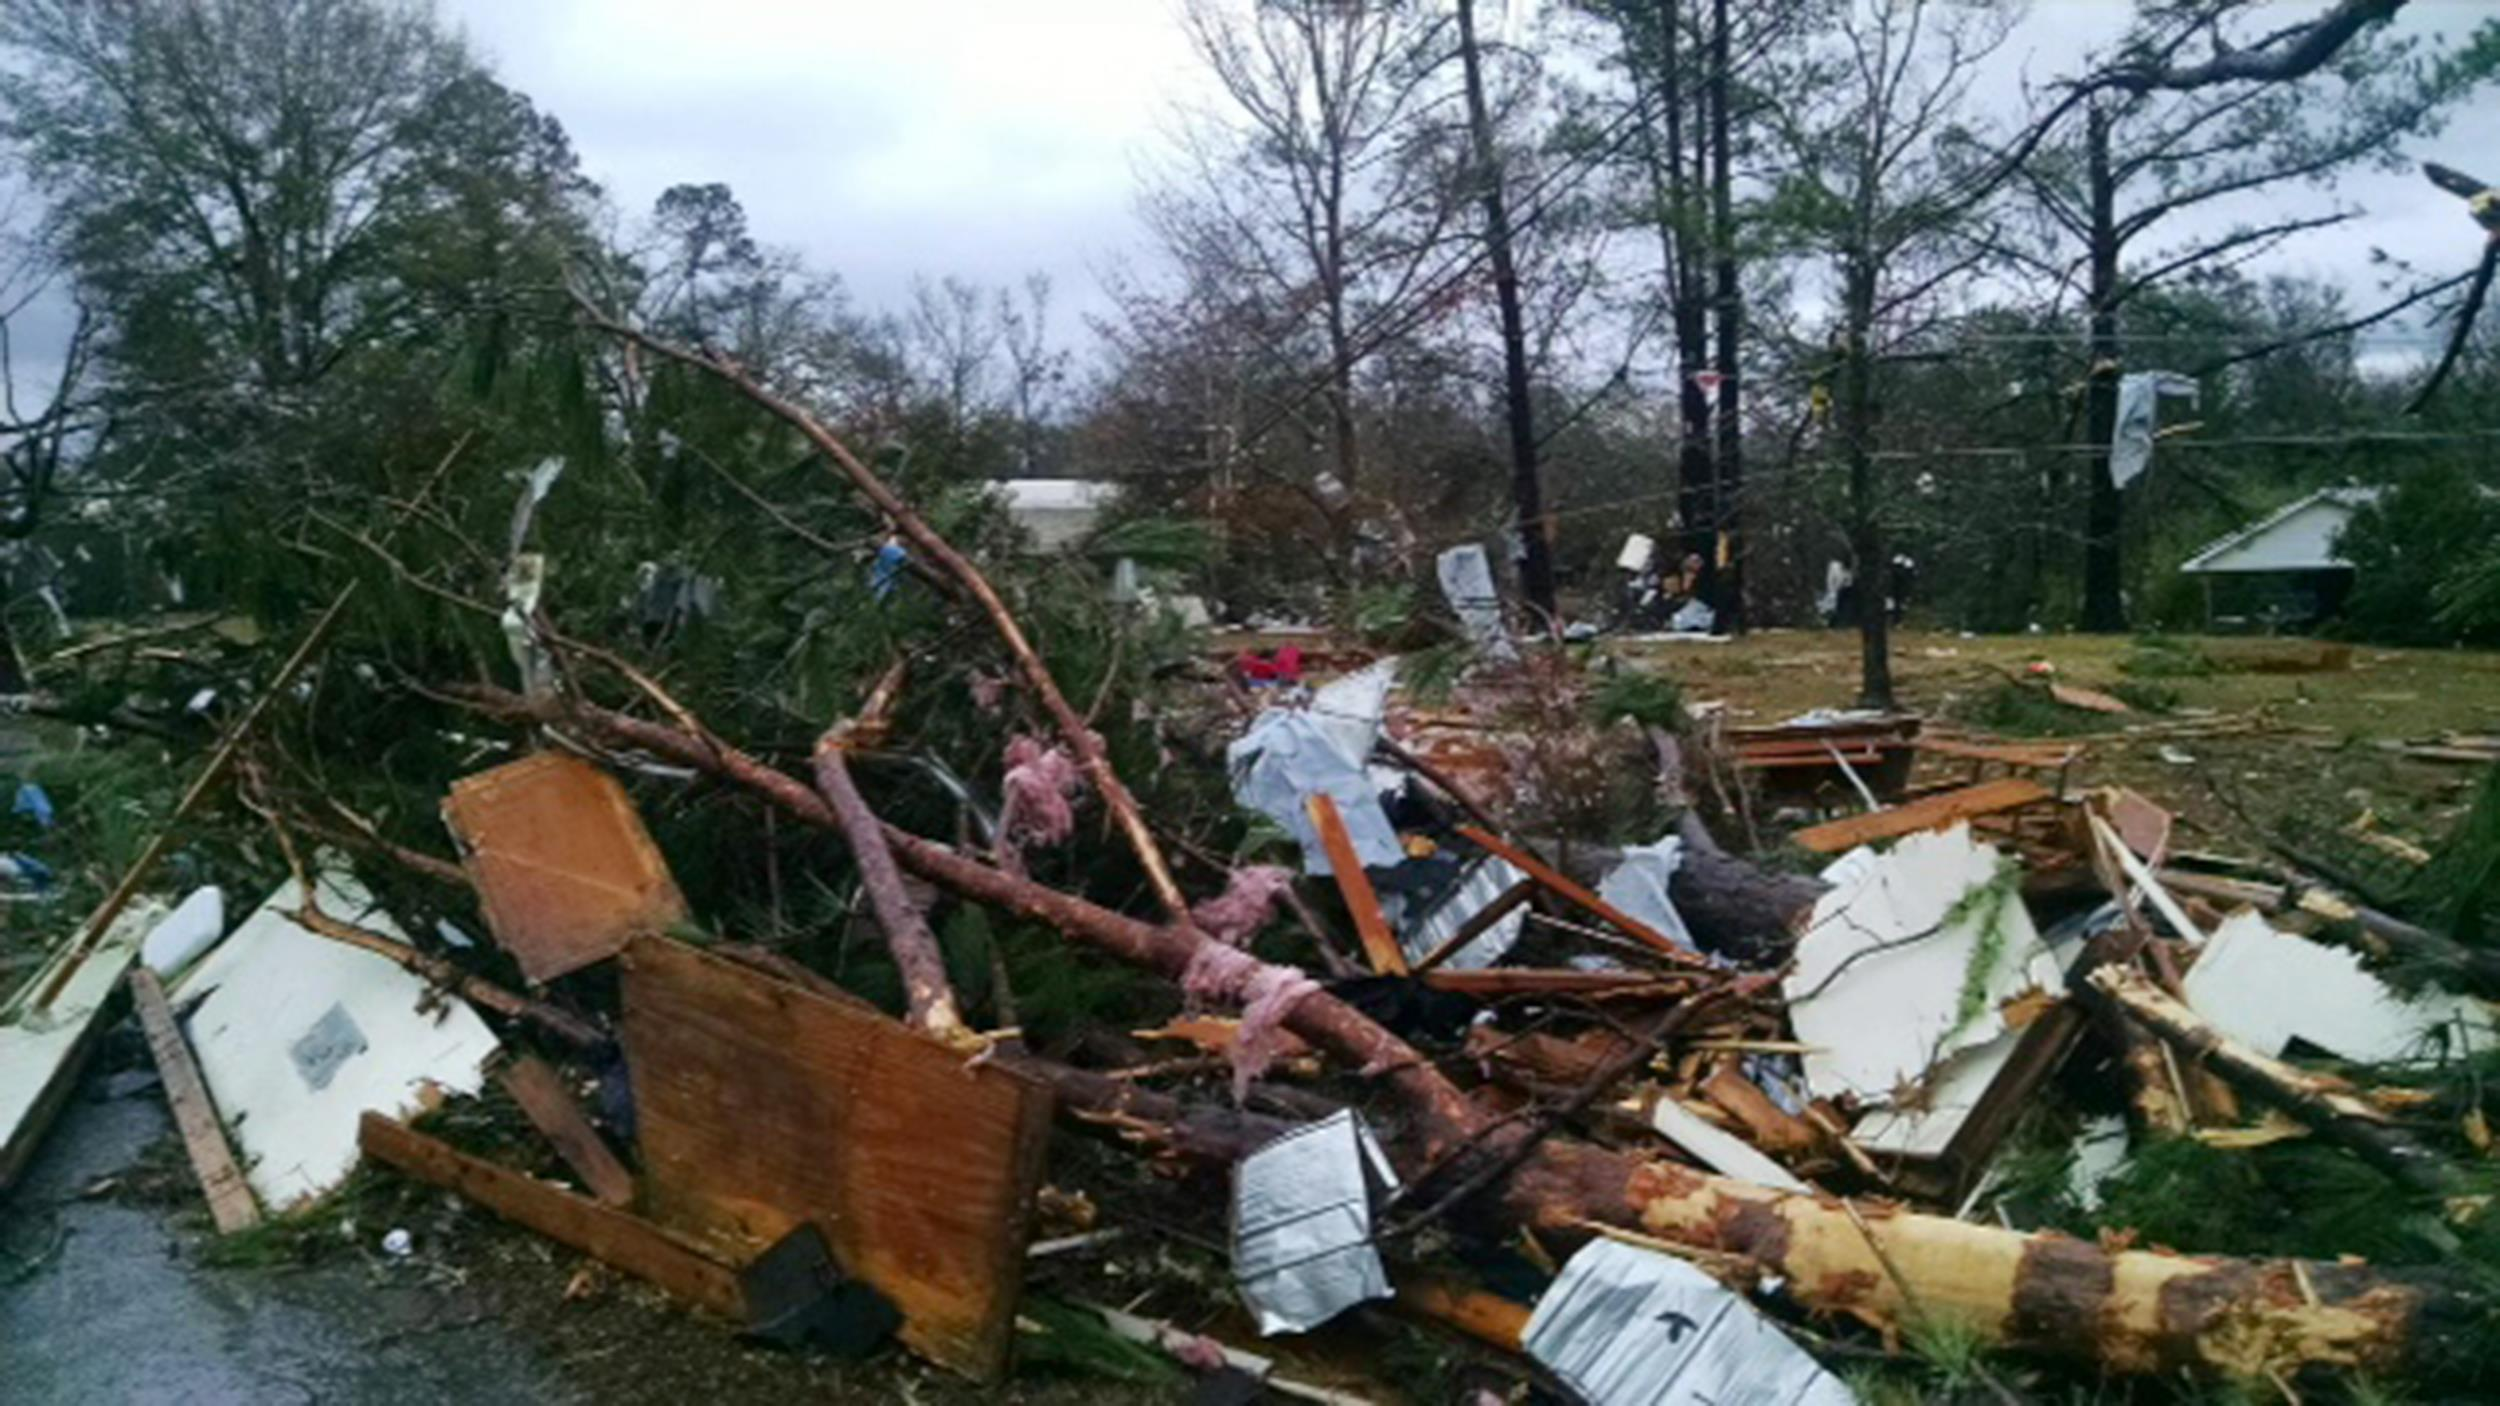 Image: Tornado damage in Tangipahoa Parish, in the Amite City area of Louisiana